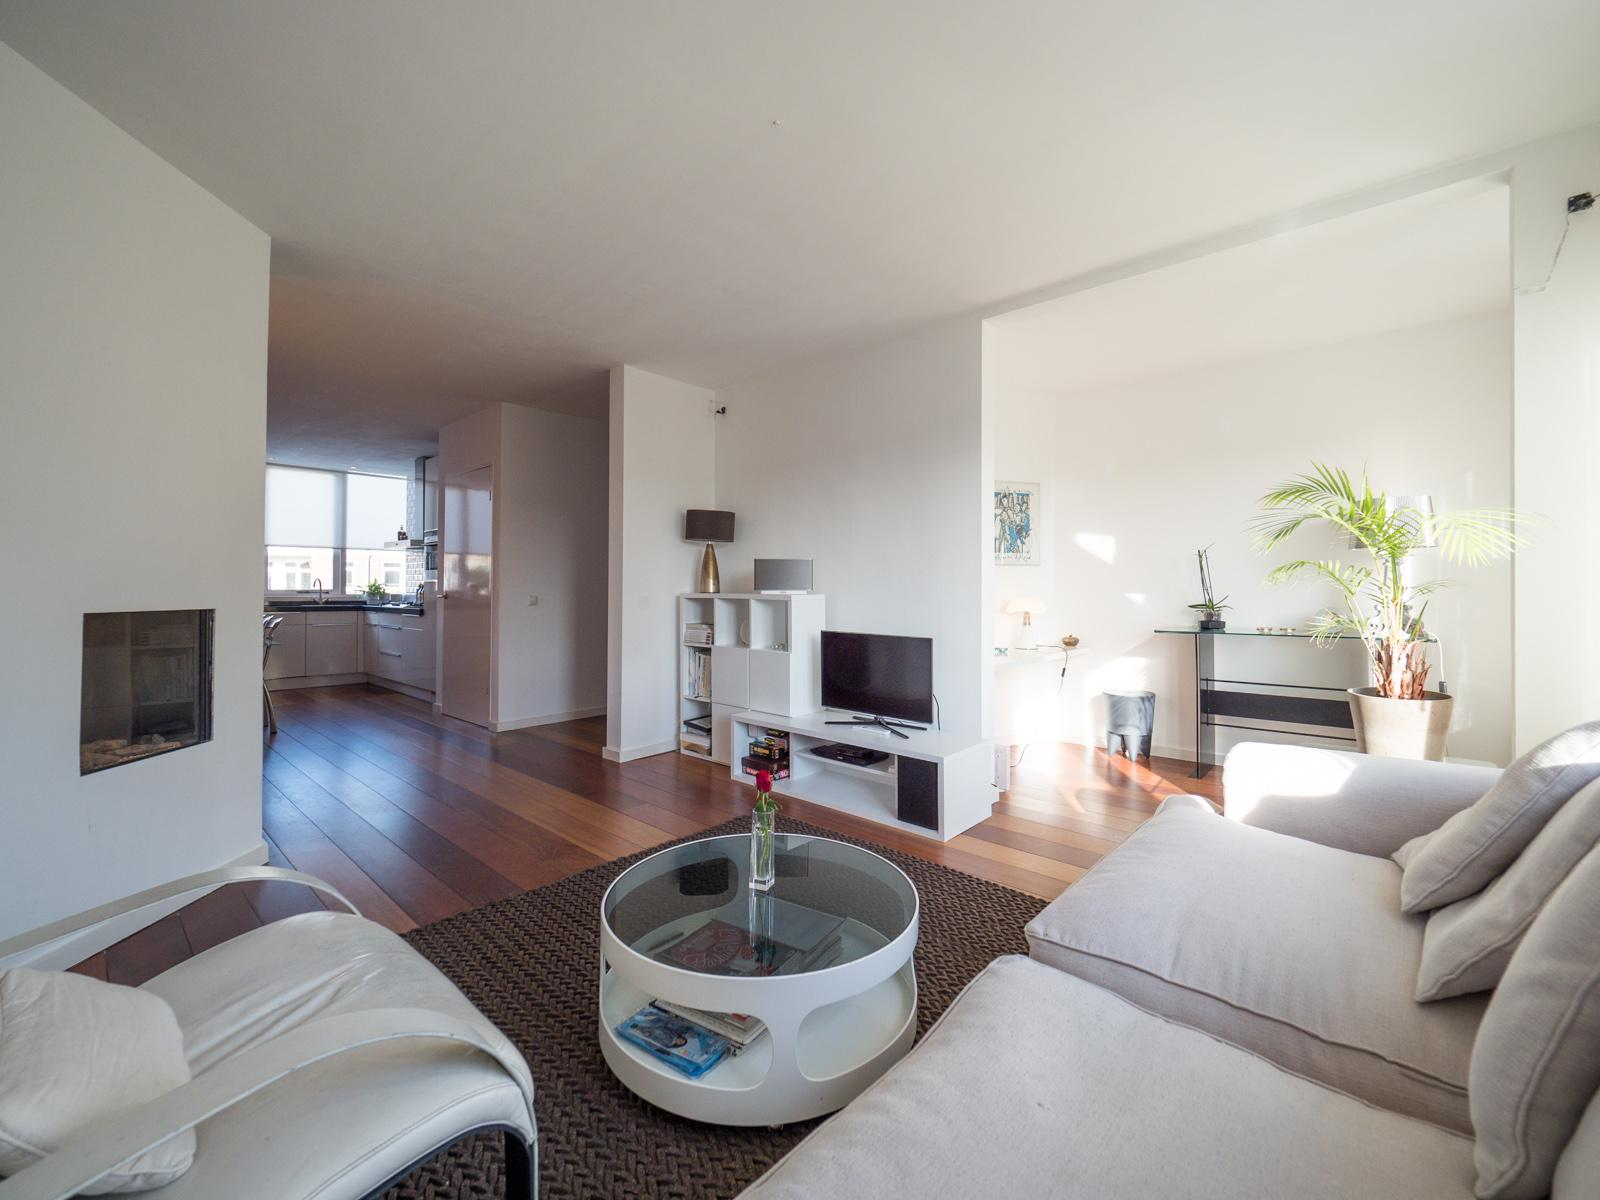 Luxurious apartment in famous Pijp area photo 54873